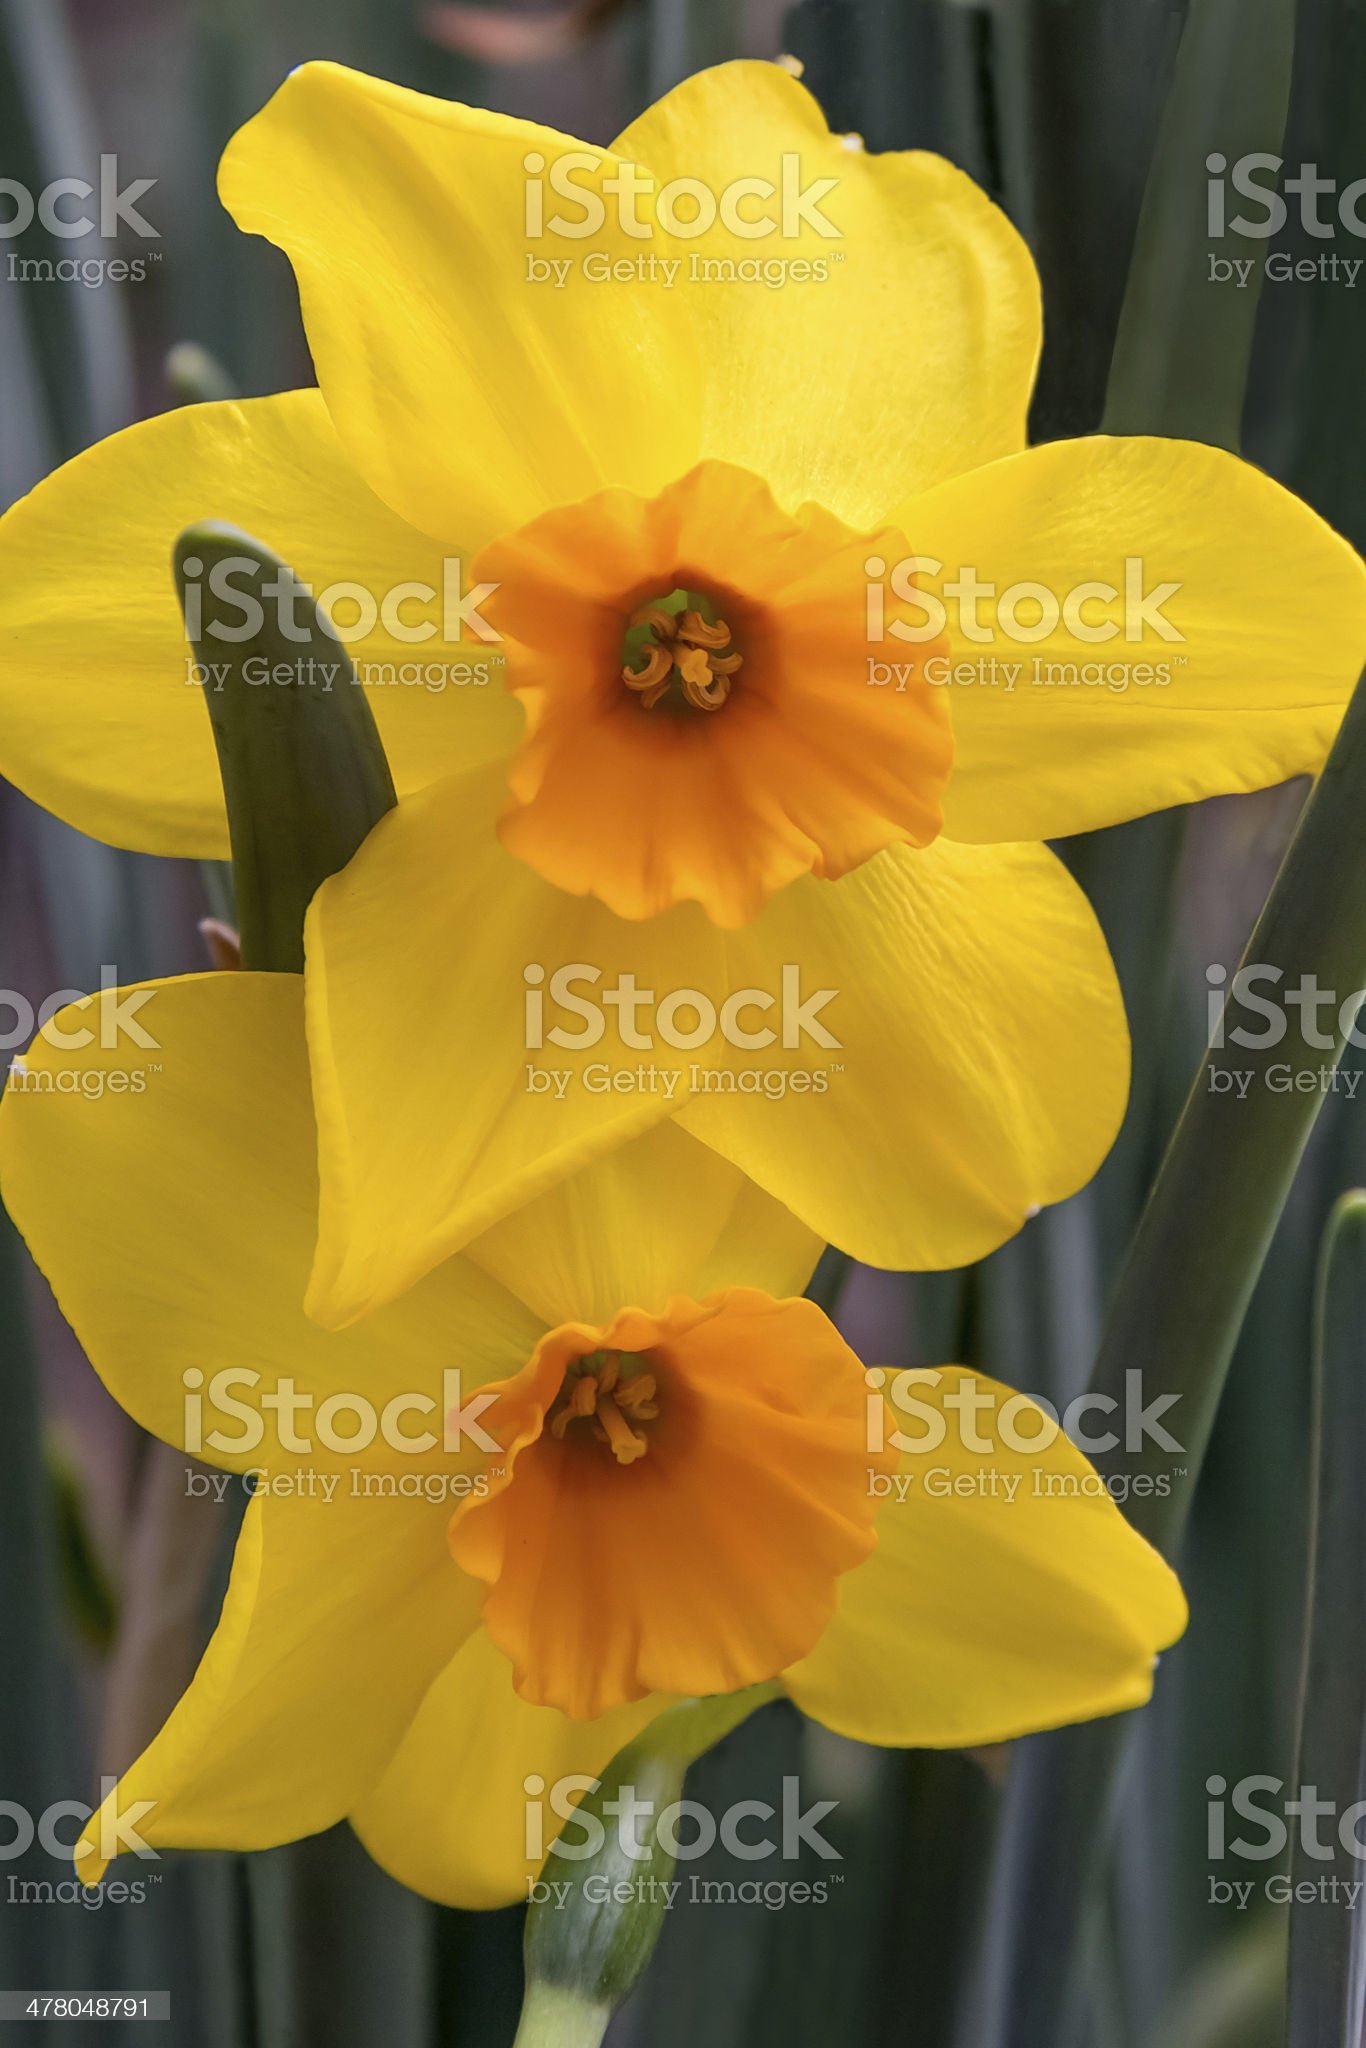 Gold and Orange Daffodils royalty-free stock photo